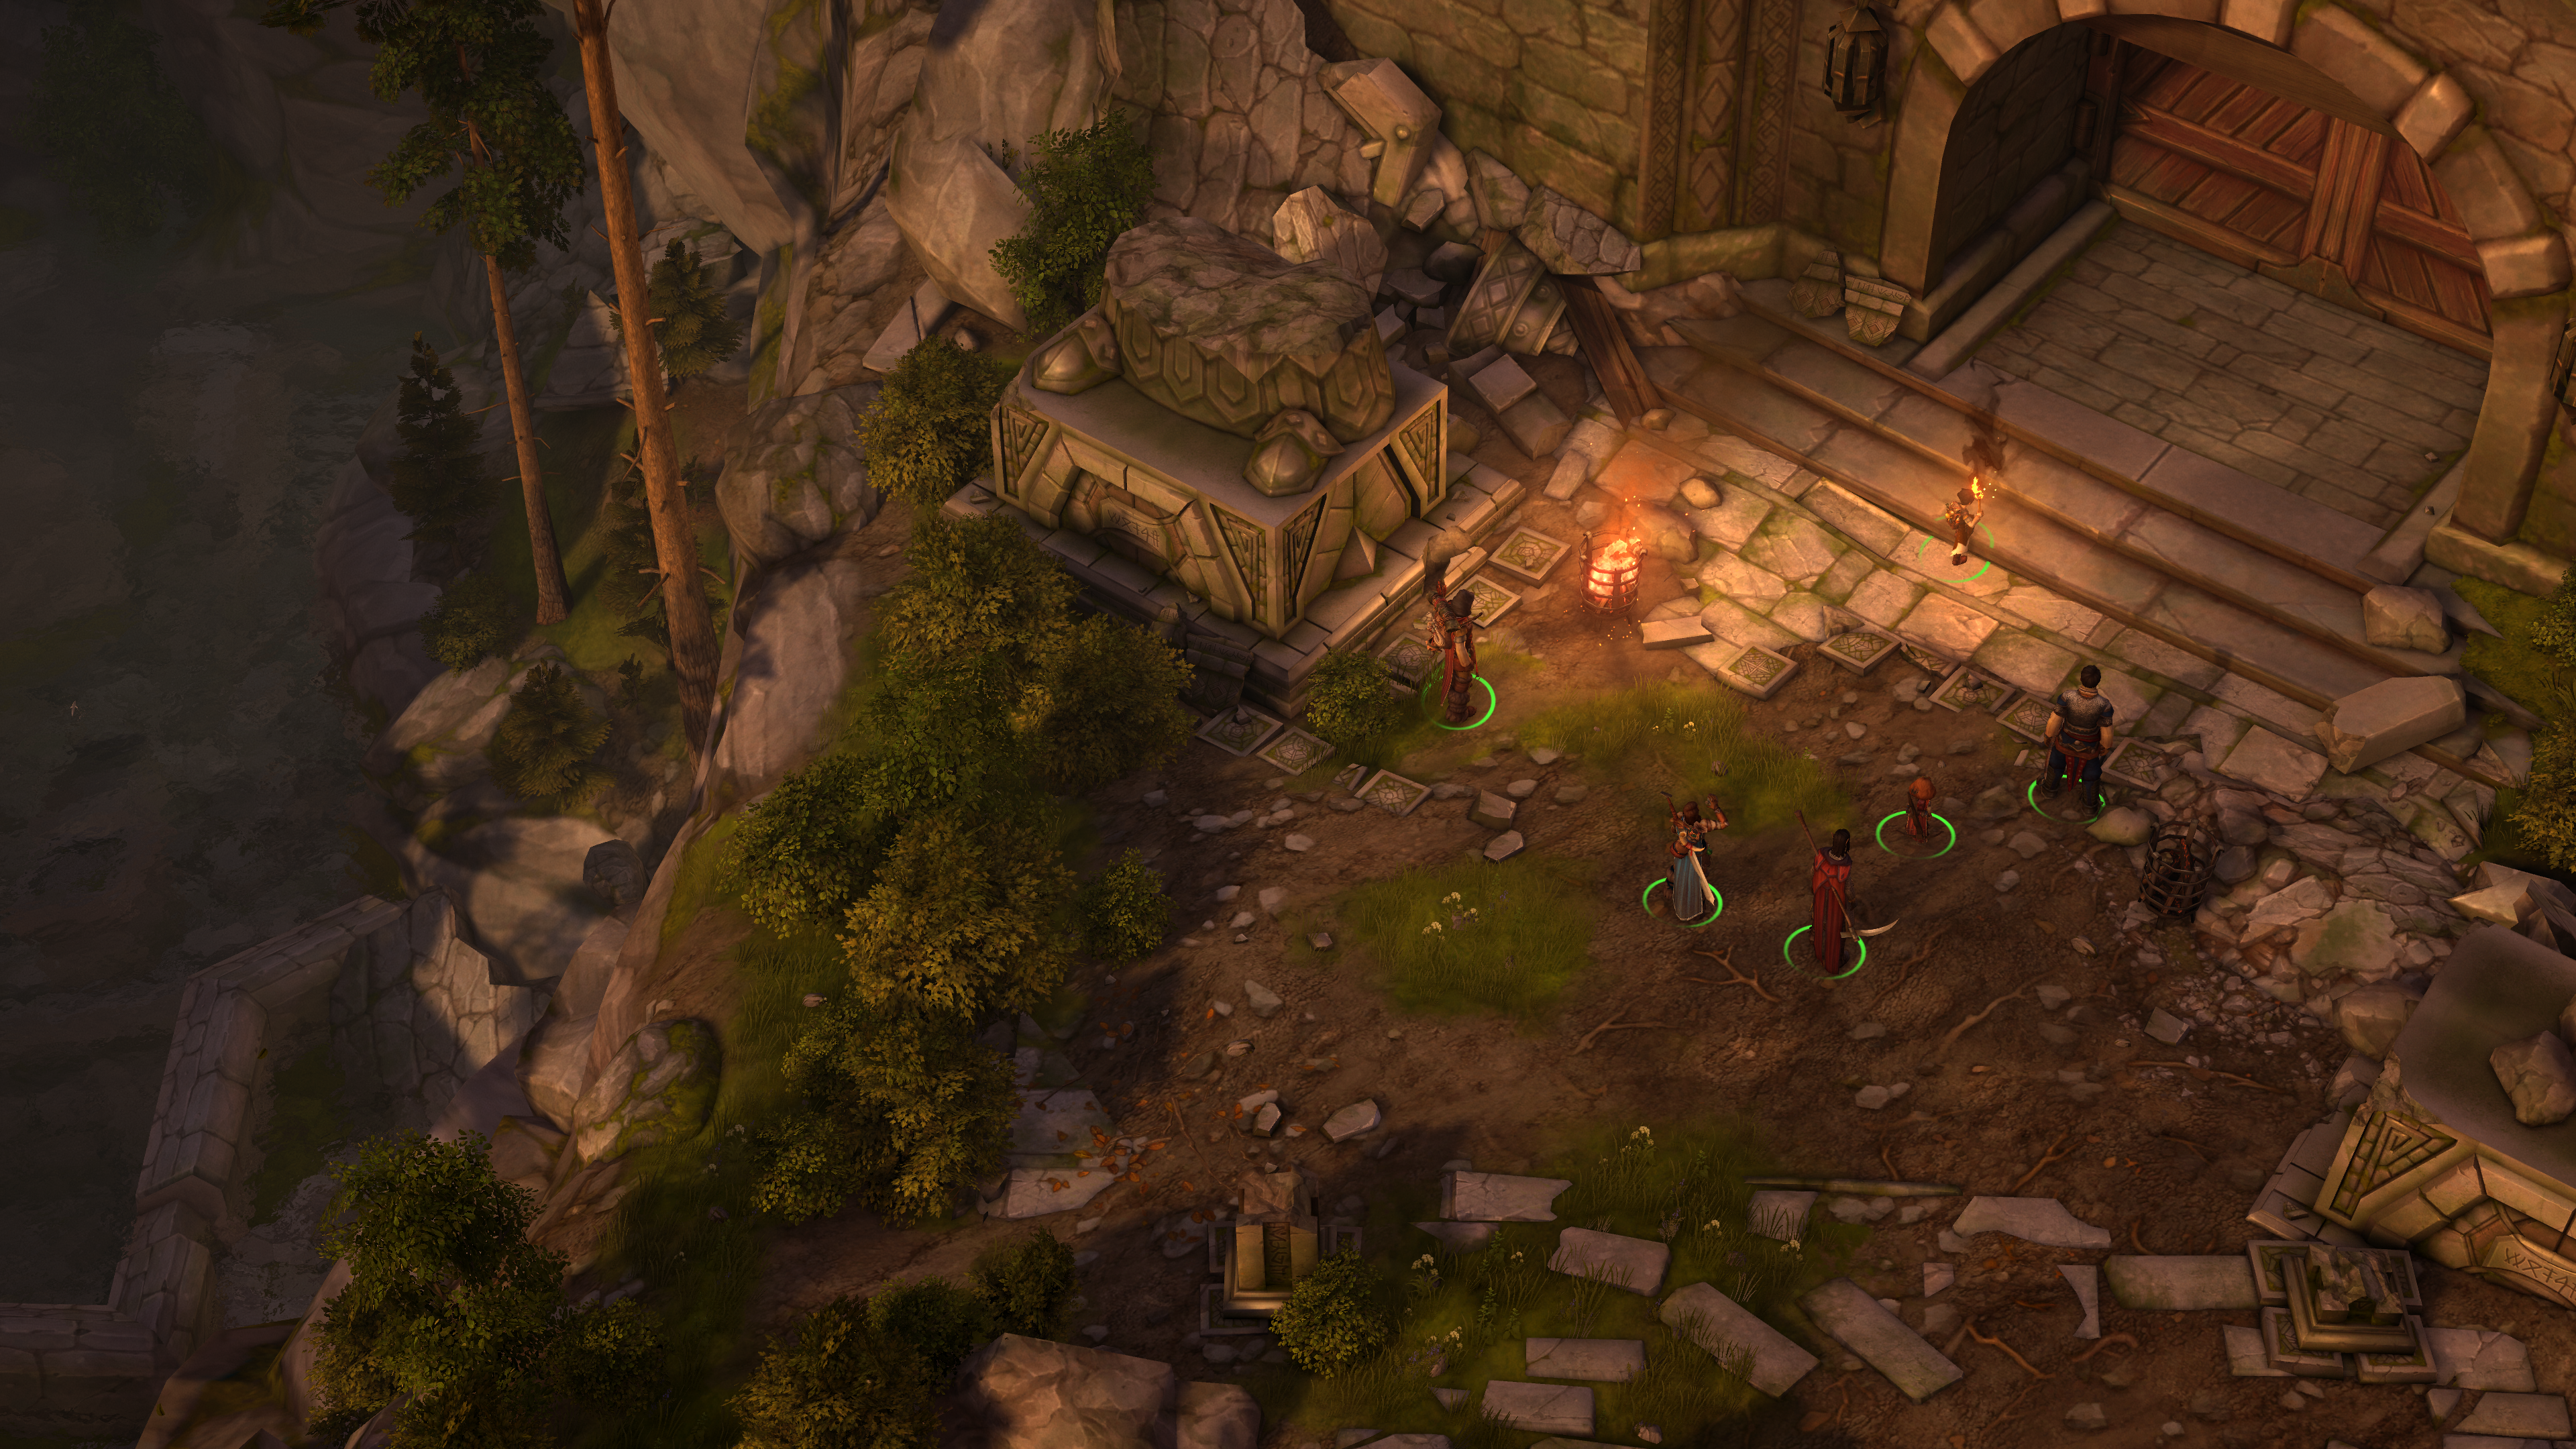 Pathfinder: Kingmaker Companions Guide - all the companions